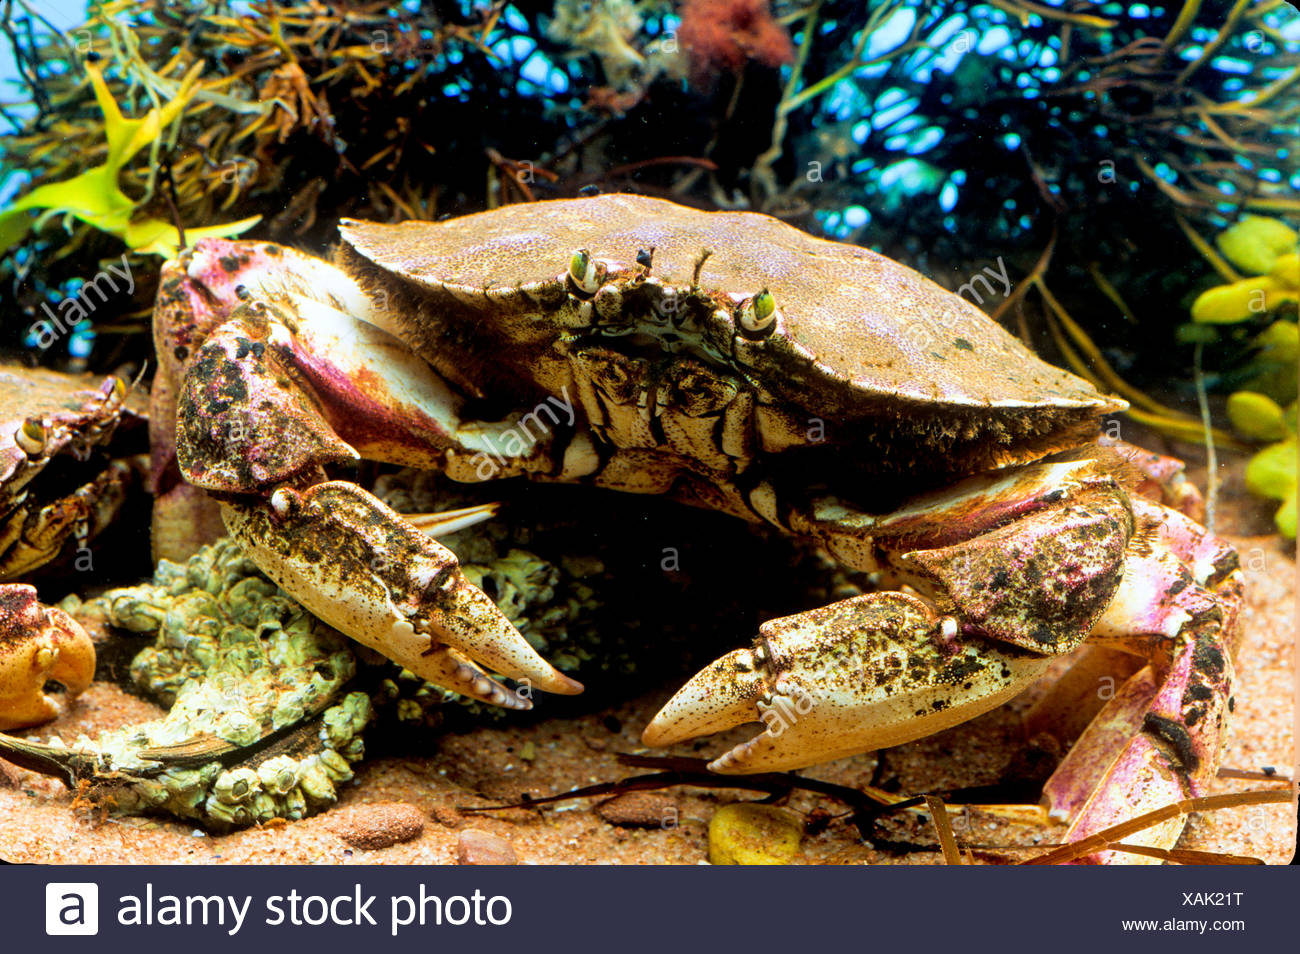 Atlantic Rock Crab, (Cancer irroratus) Stock Photo